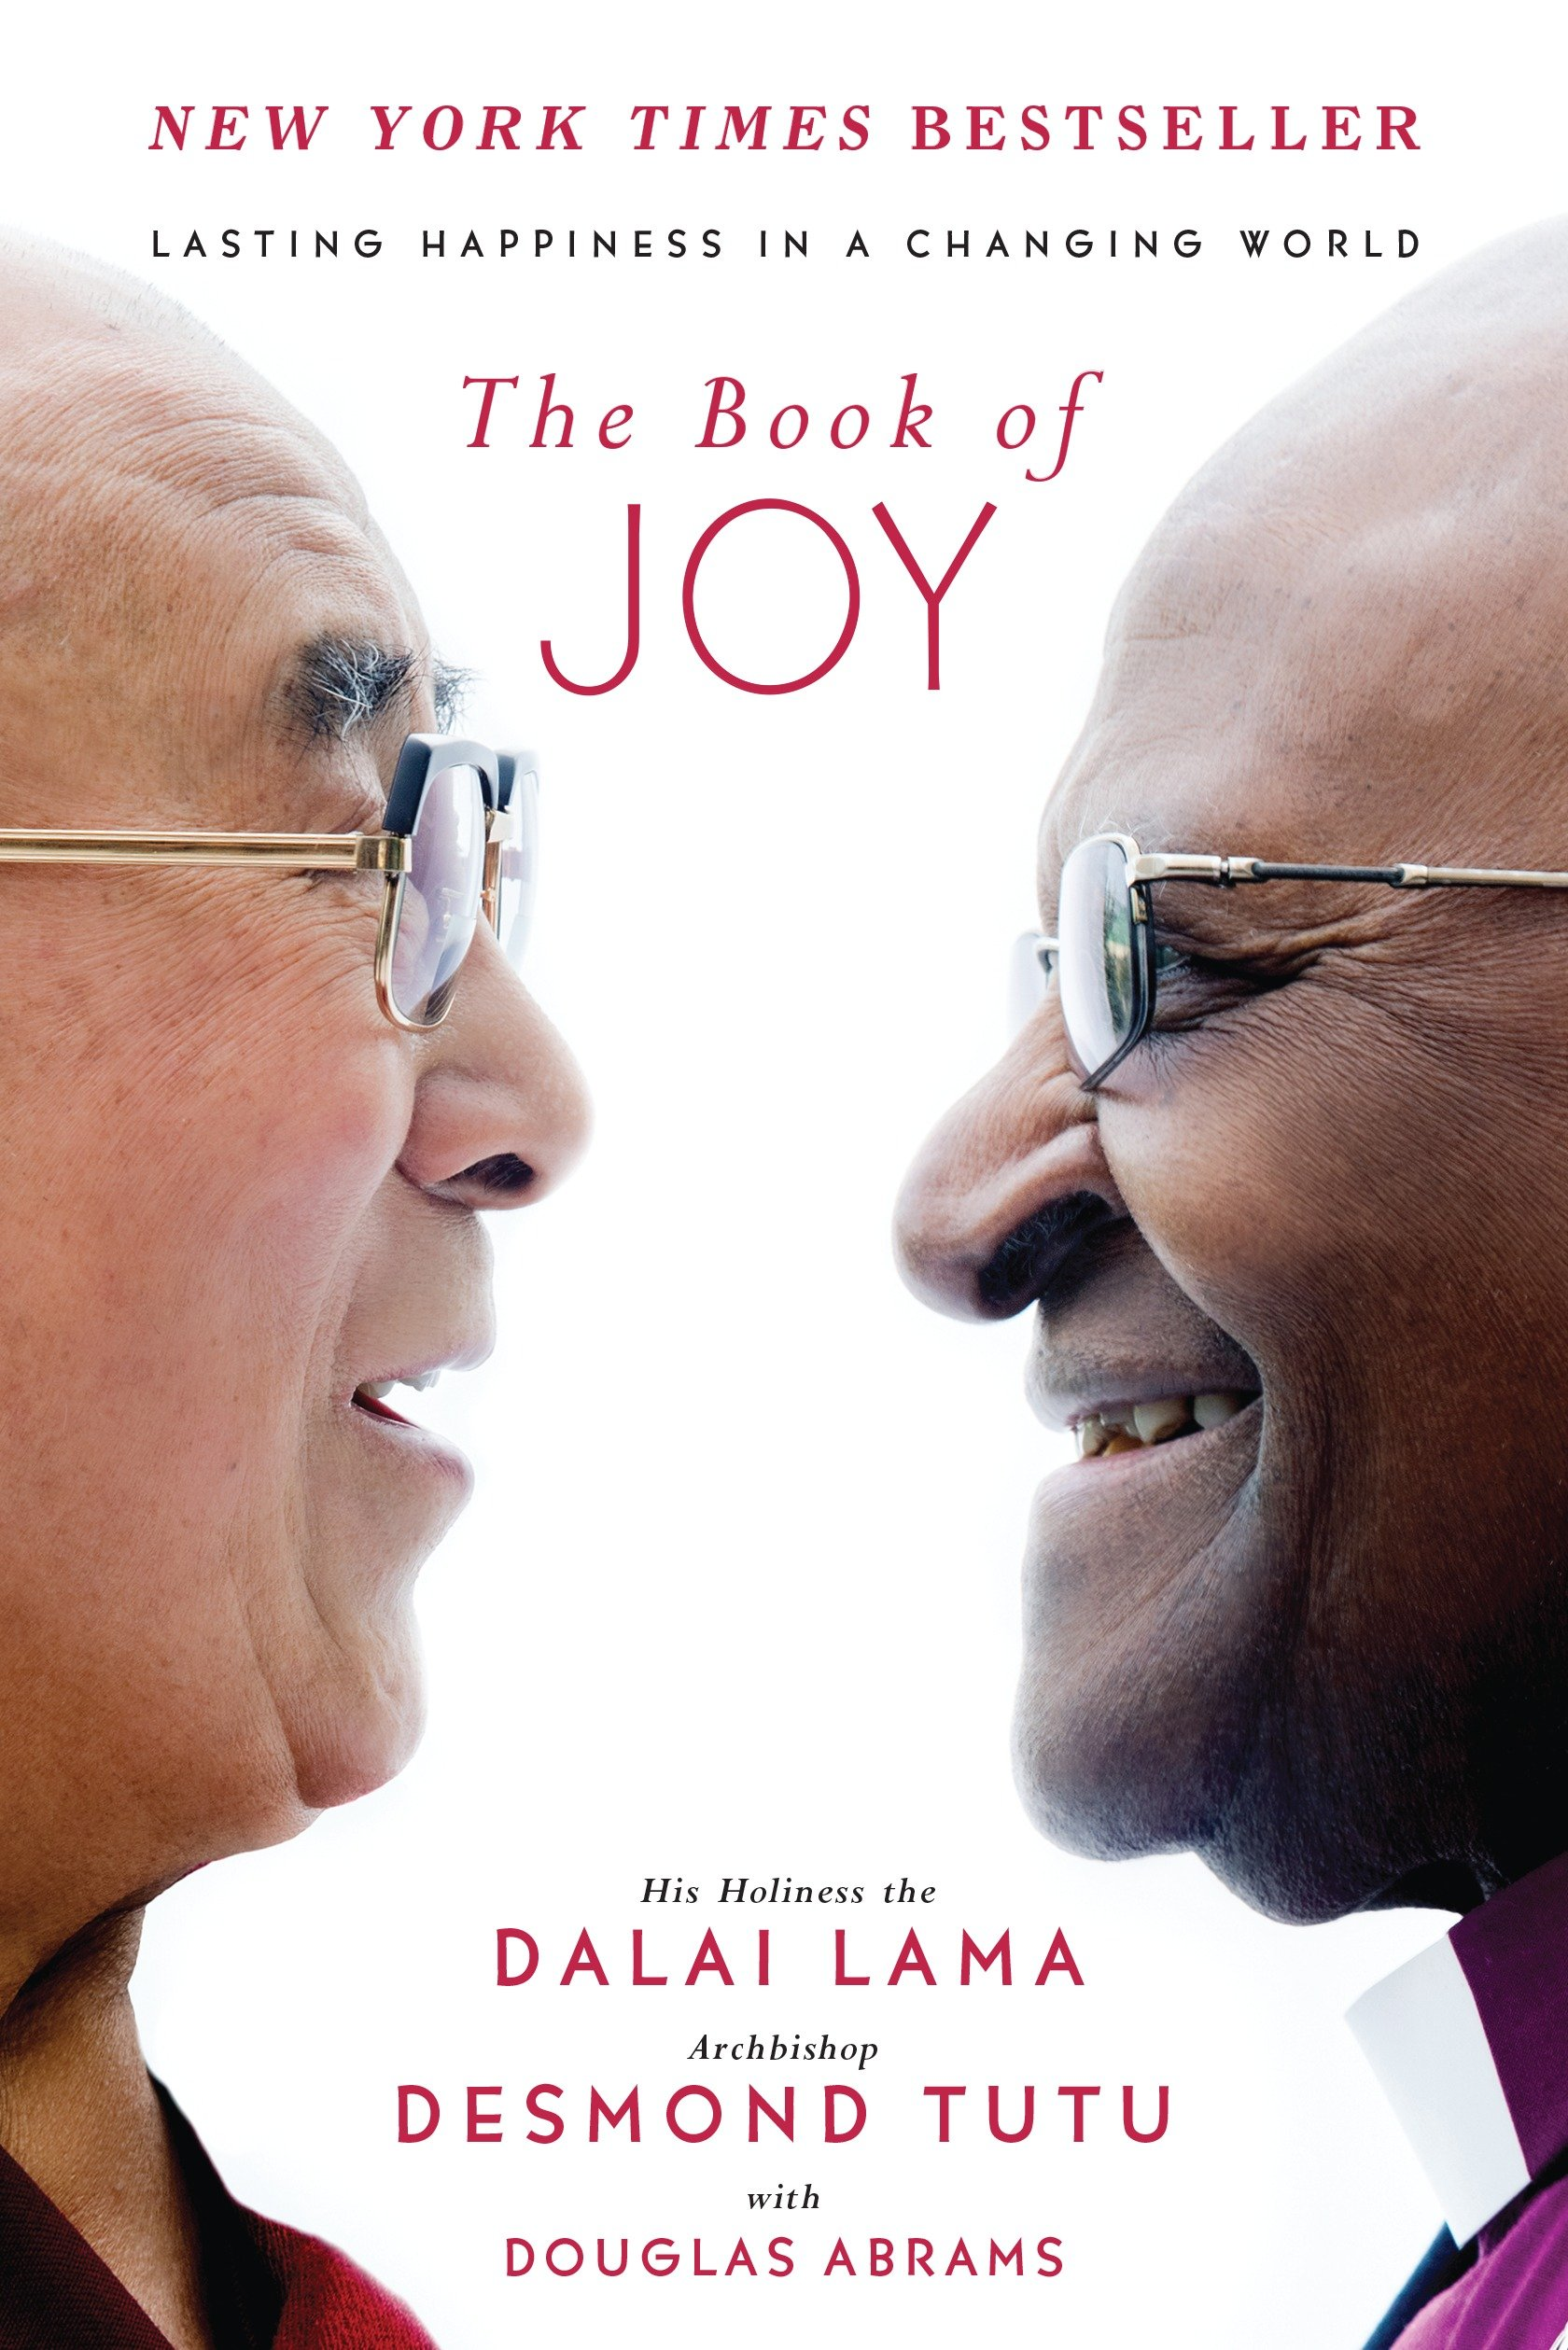 The Book of Joy [EBOOK] Lasting Happiness in a Changing World